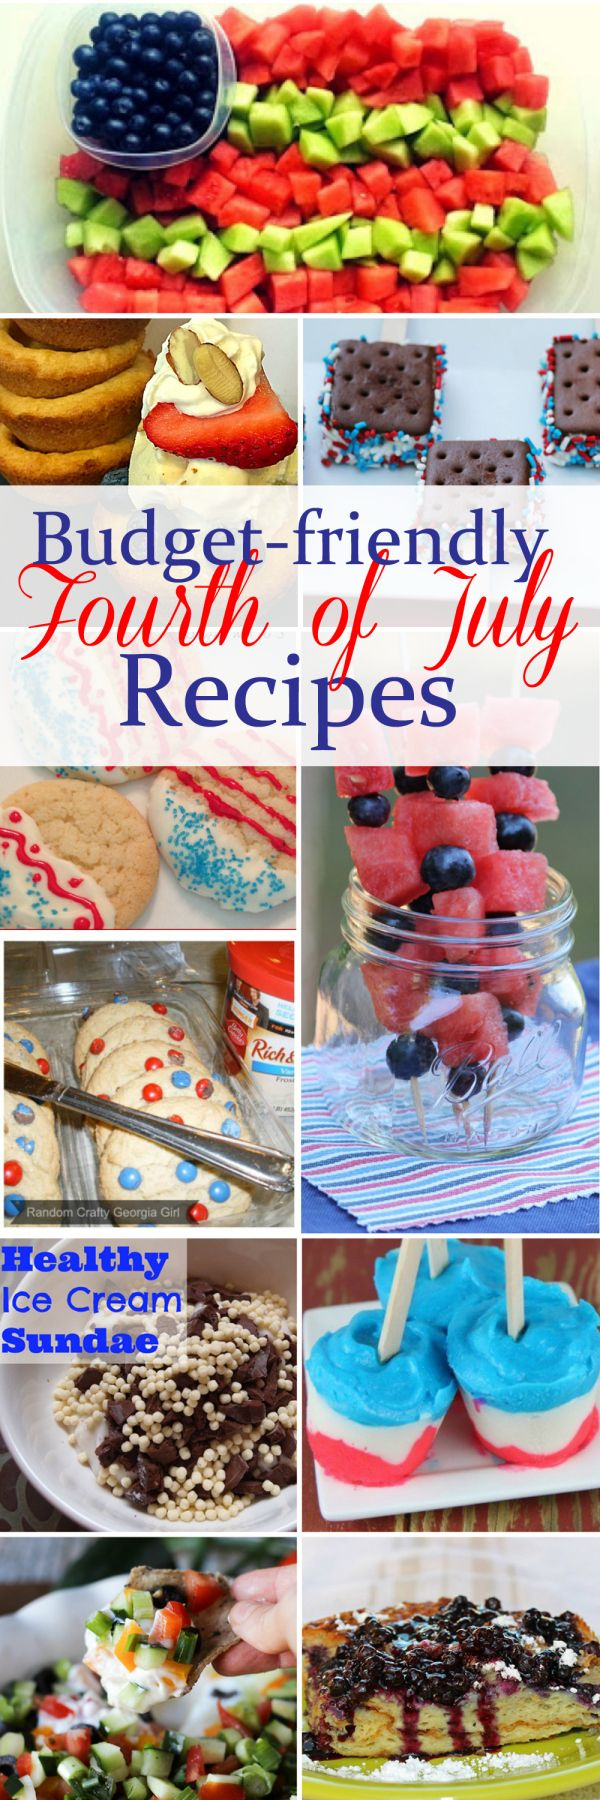 Budget Friendly Fourth of July Recipes. These recipes from bloggers are easy and budget friendly, sure to make your July 4th party a success.